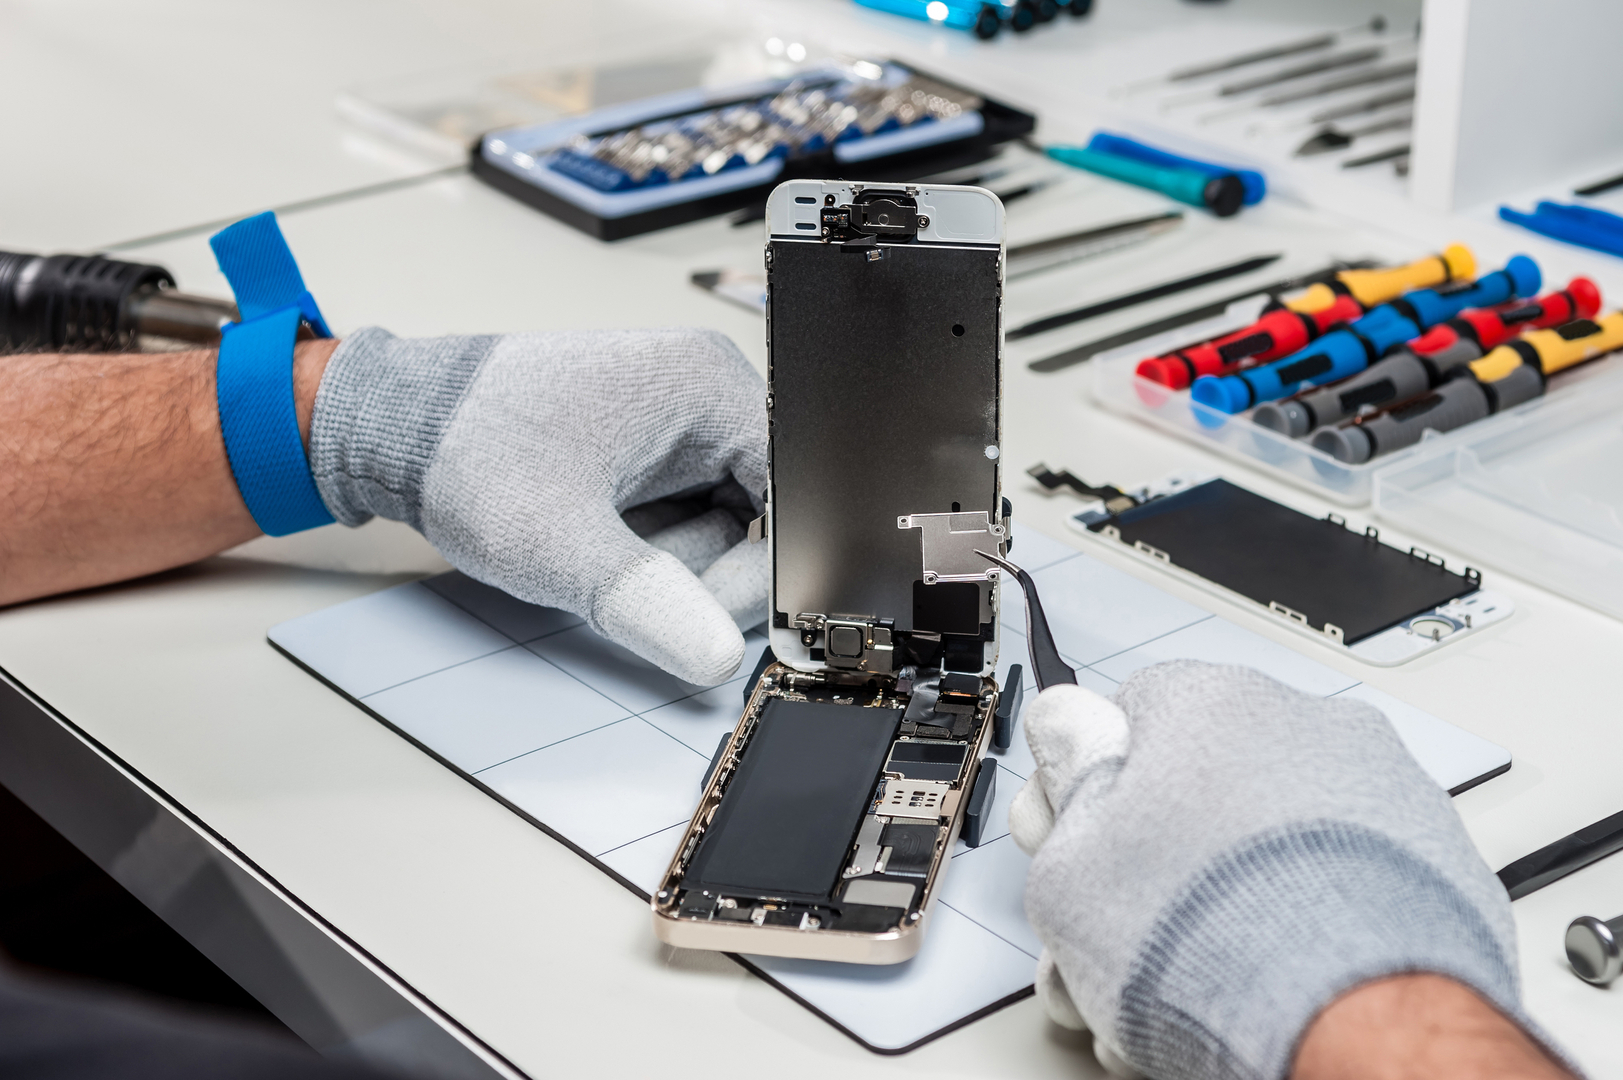 how to choose an iPhone repair shop in La Jolla - tips for choosing an apple certified iPhone screen repair lcd repair water damage - San Diego Mac repair since 2009. fix cracked glass water damag